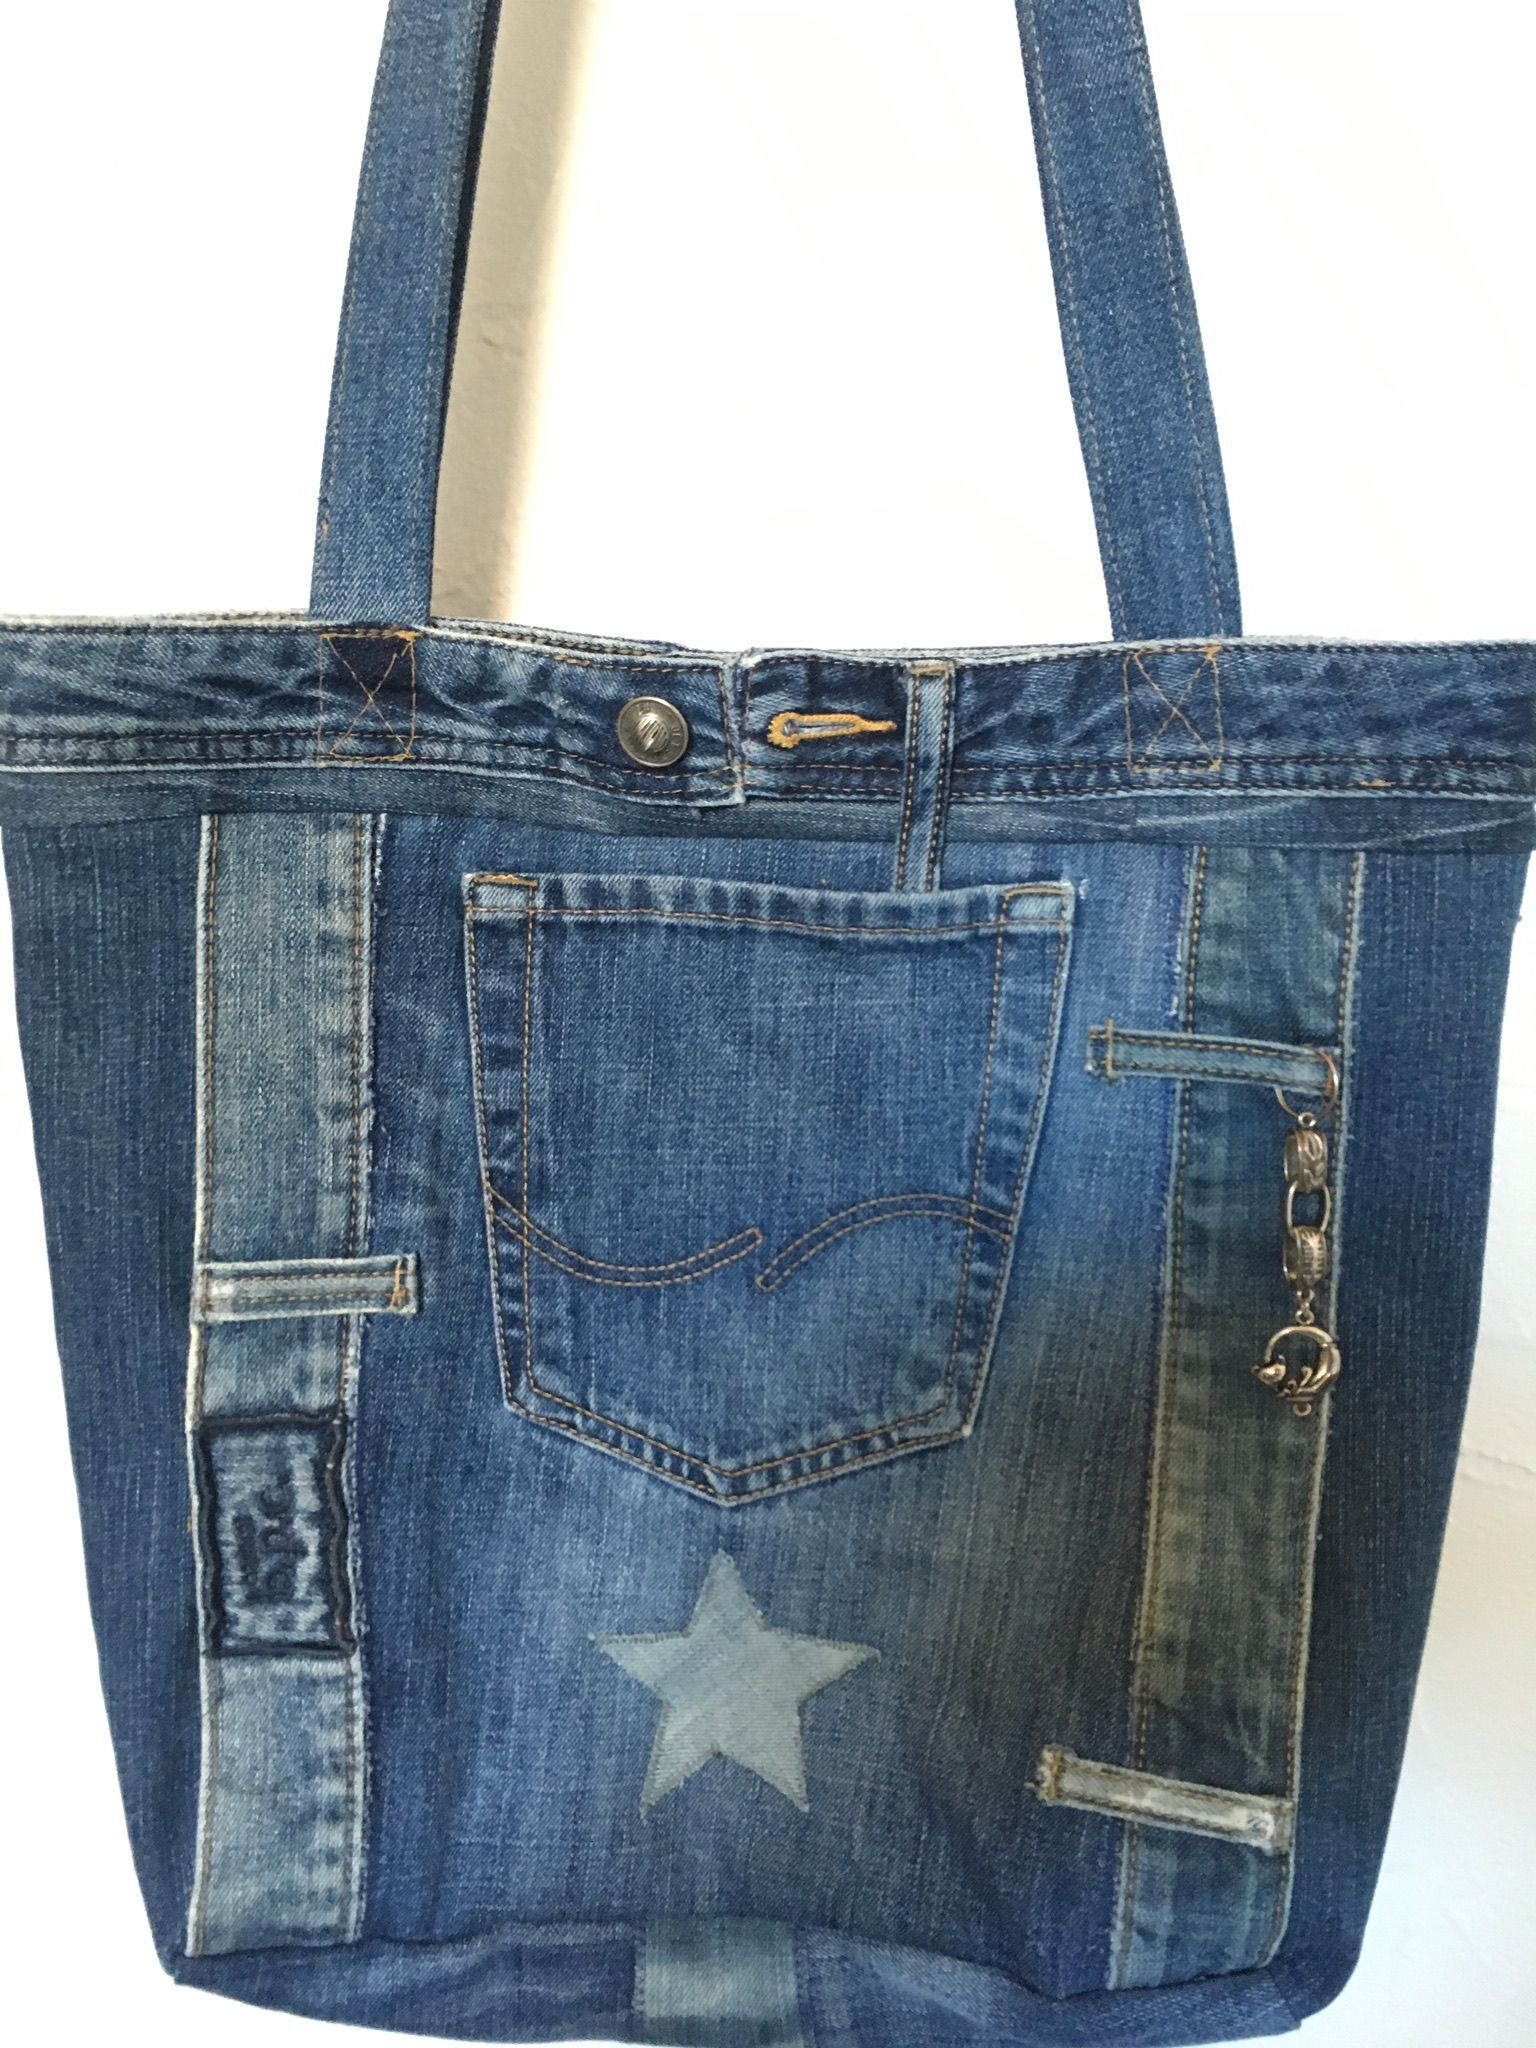 Denim tote made mostly from Tommy Hilfiger repurposed jeans